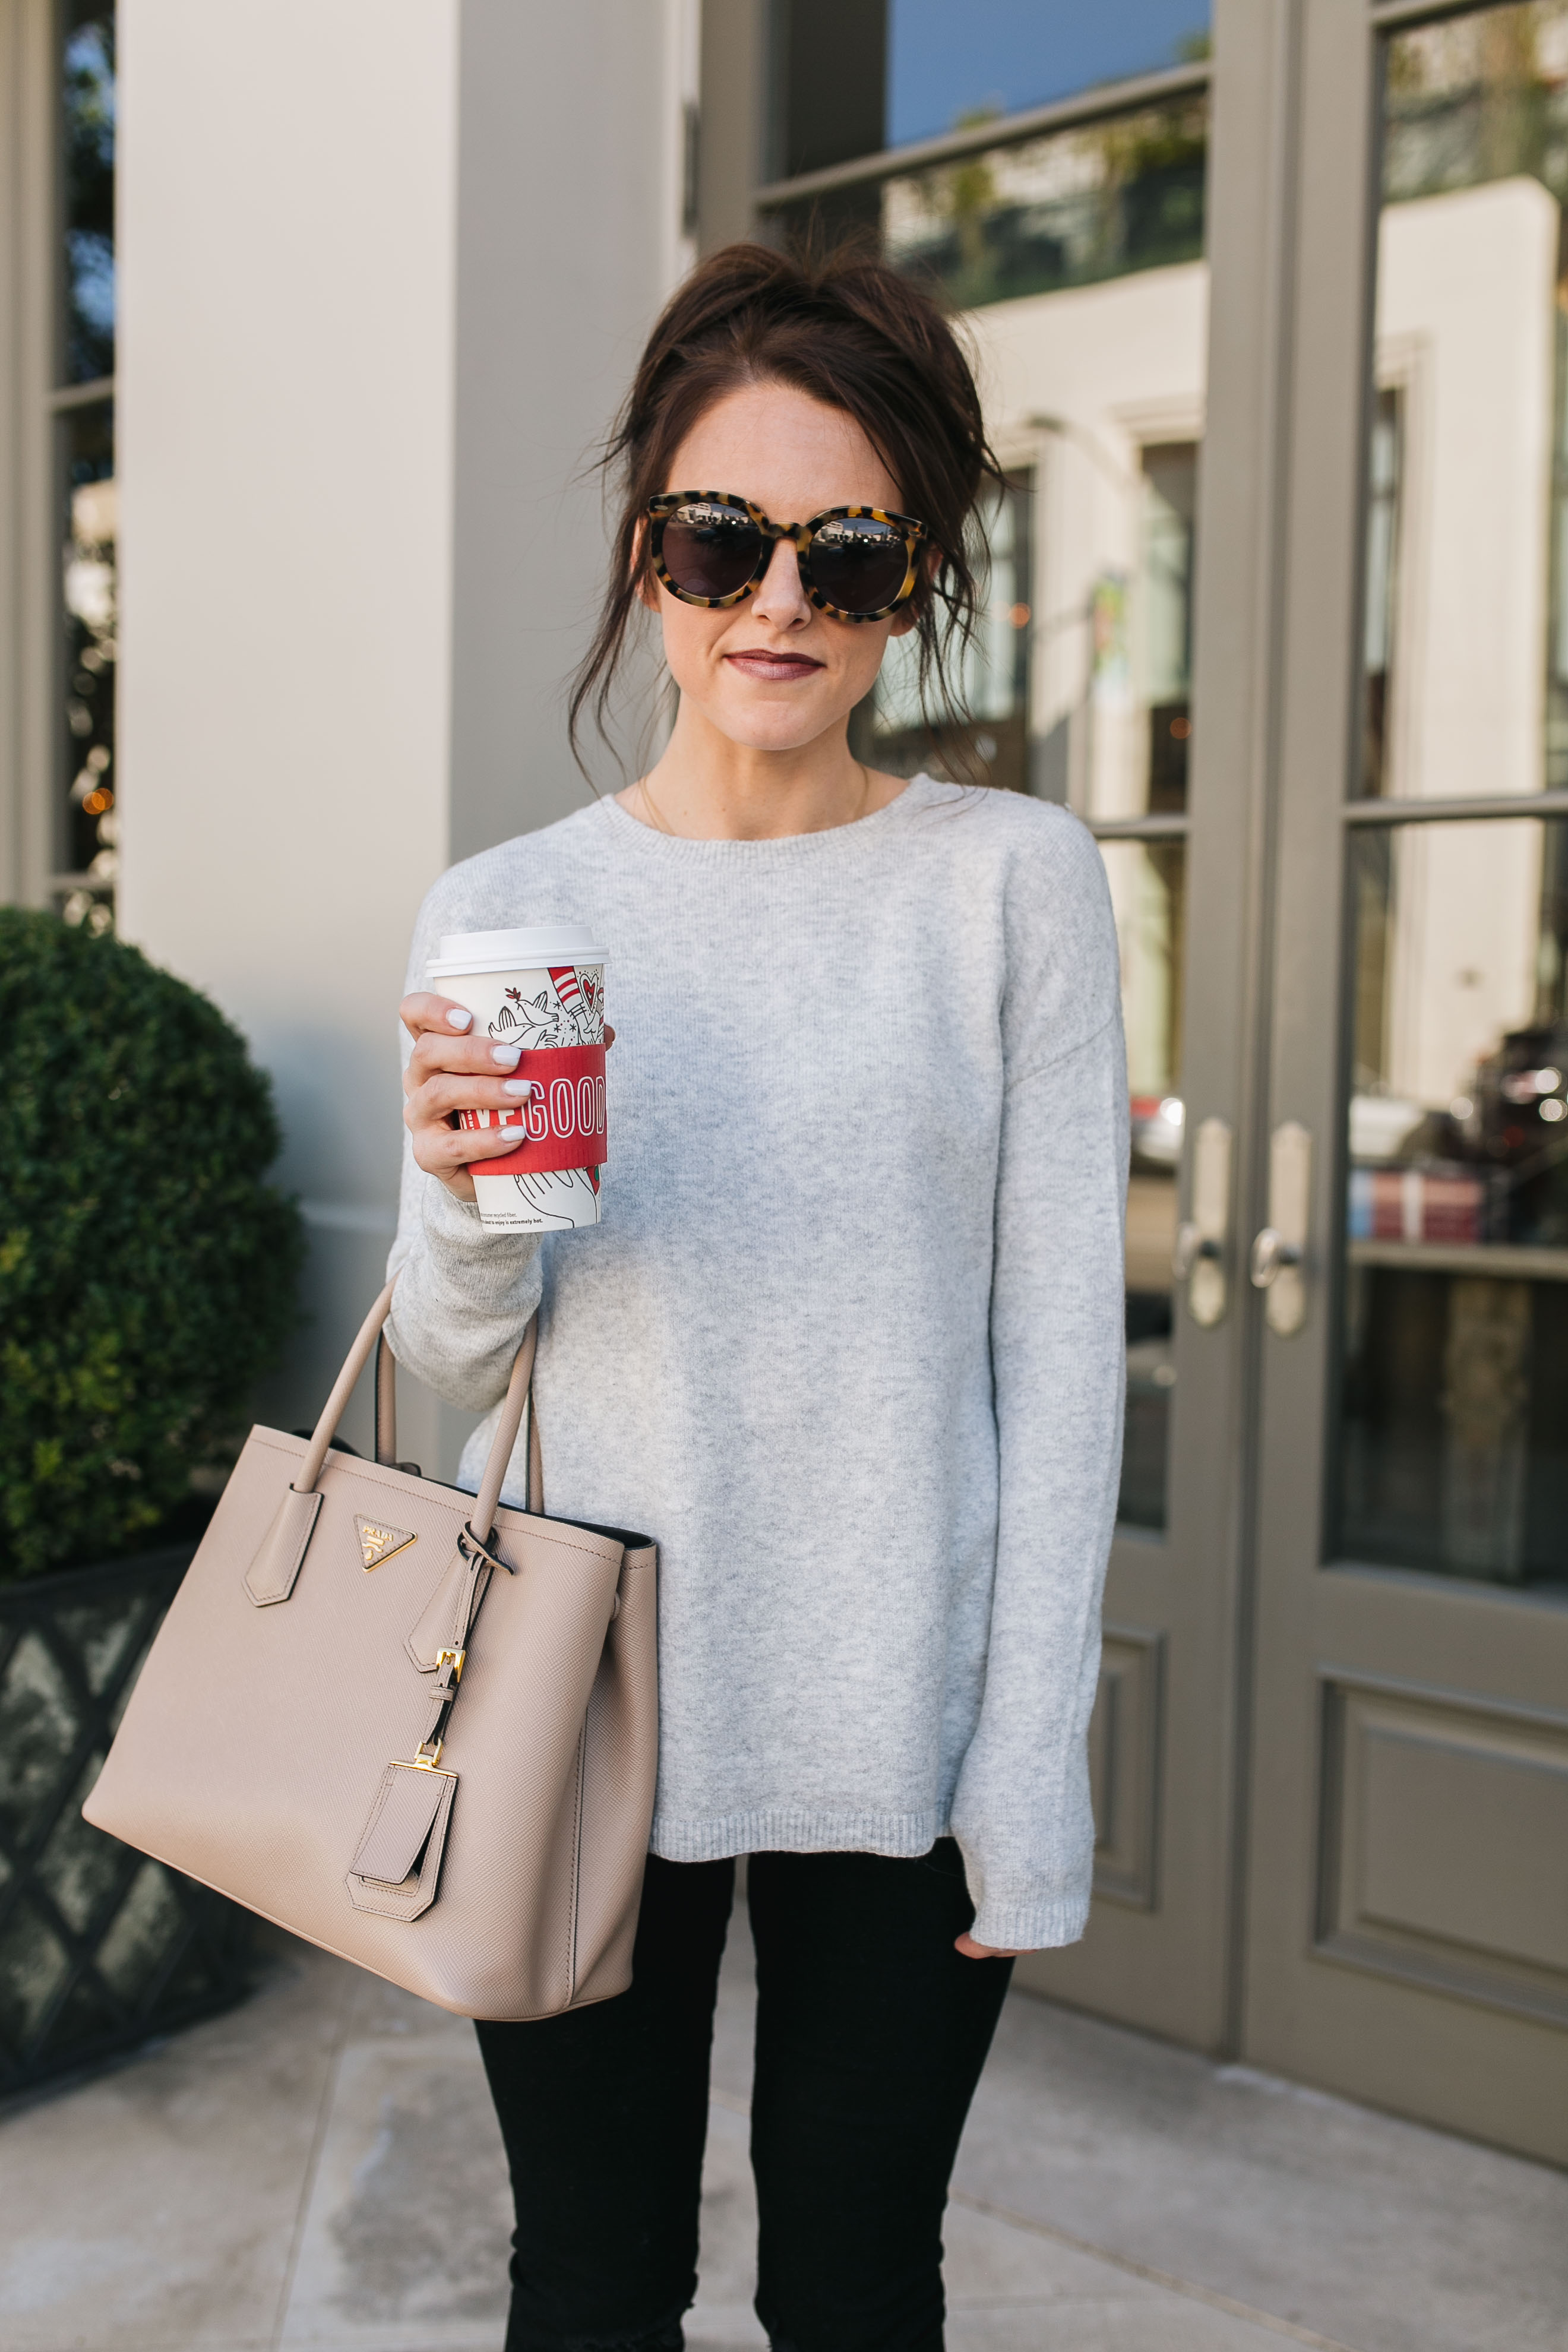 Style blogger Daryl-Ann Denner wears a bow back sweater from Nordstrom, black ripped skinny jeans from Abercrombie & Fitch, a nude Prada bag, leopard print sunglasses and a hot chocolate in a Starbucks holiday cup.